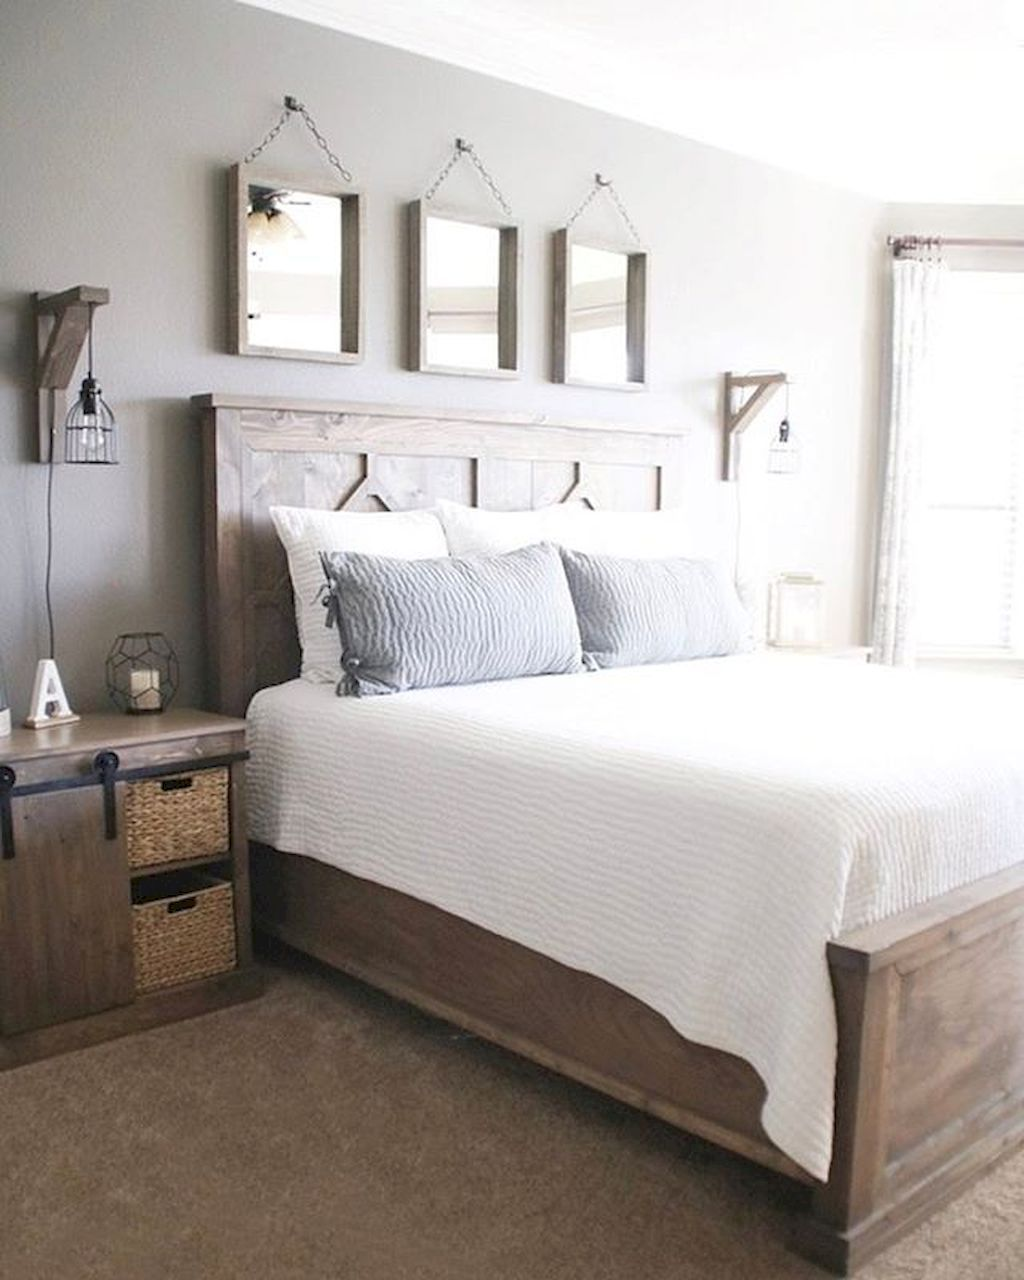 Best Rustic Farmhouse Style Master Bedroom Ideas 22 Dormitorios 640 x 480